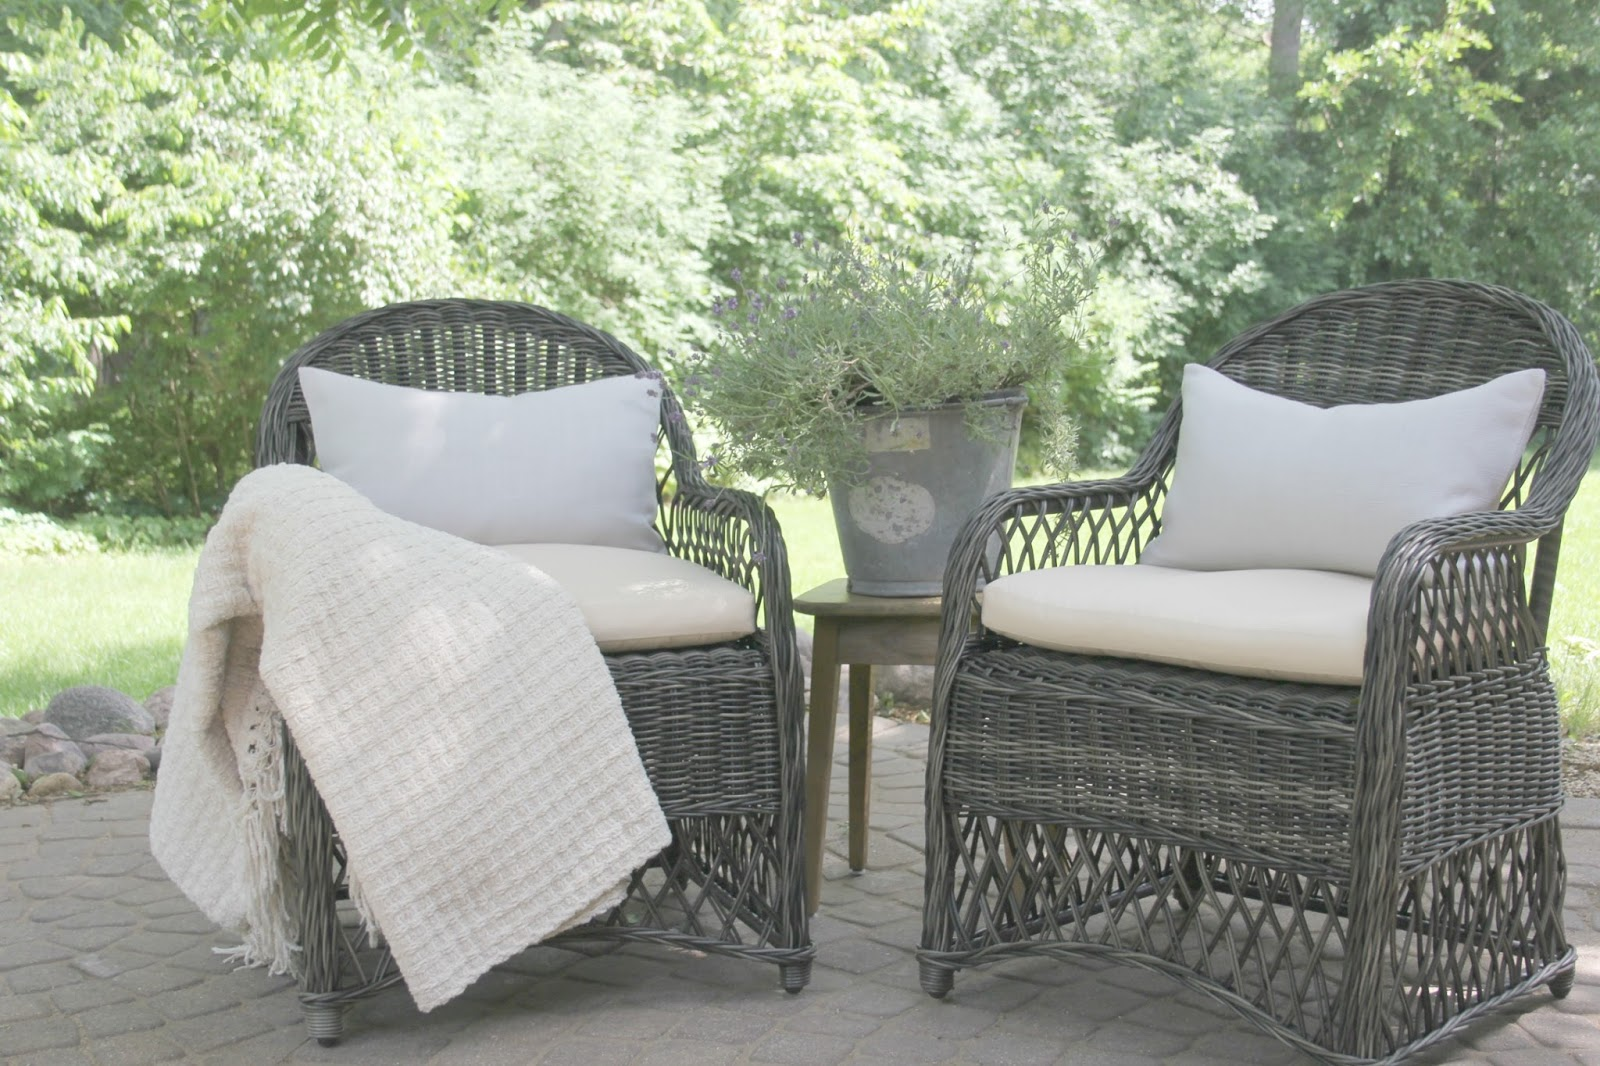 Beautiful dark grey wicker chairs with linen pillows and galvanized bucket of lavender on patio. Hello Lovely Studio.